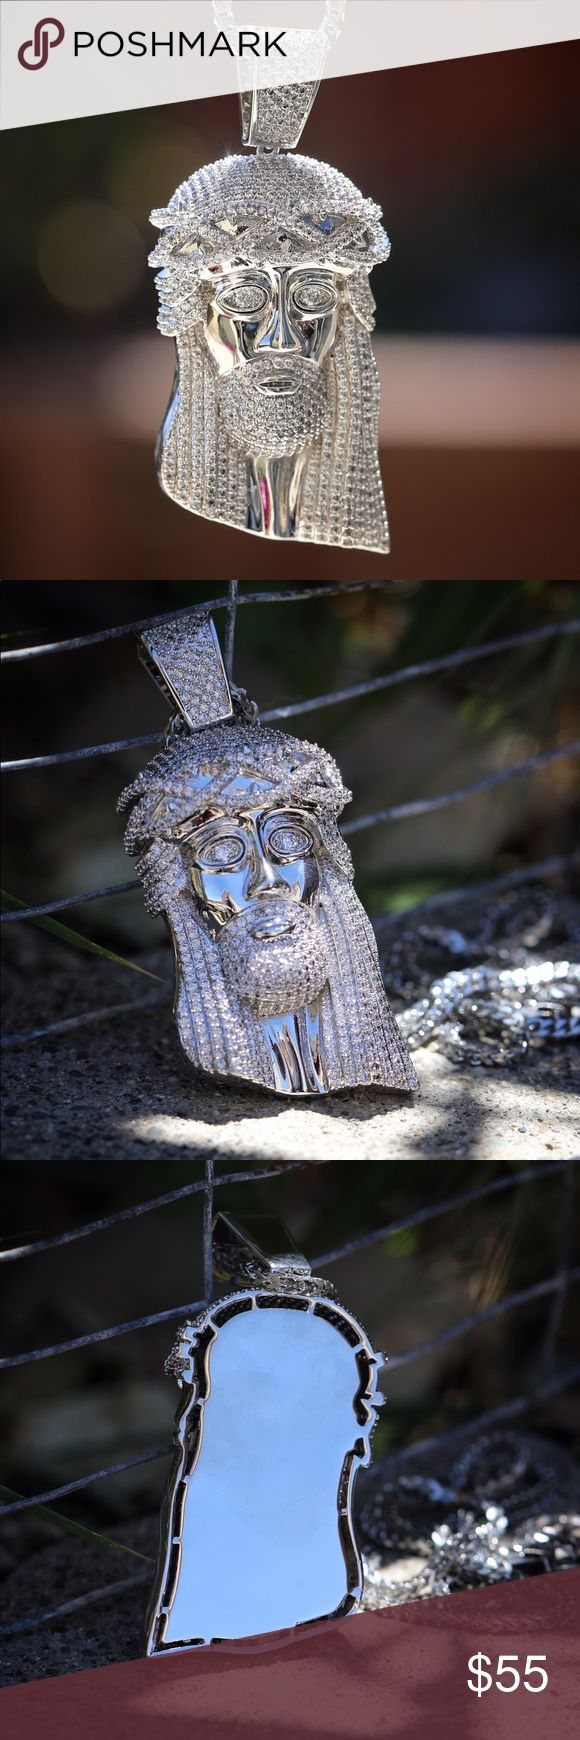 Large White Gold Plated Jesus Piece Necklace Large Iced Out White Gold Plated Jesus Piece Necklace  Large size Jesus Piece size 3.5 inches in length.  Fully iced out in white lab simulated diamonds.  3mm width 30 inch 316 stainless steel franco chain is includded. TSV Jewelers Accessories Jewelry